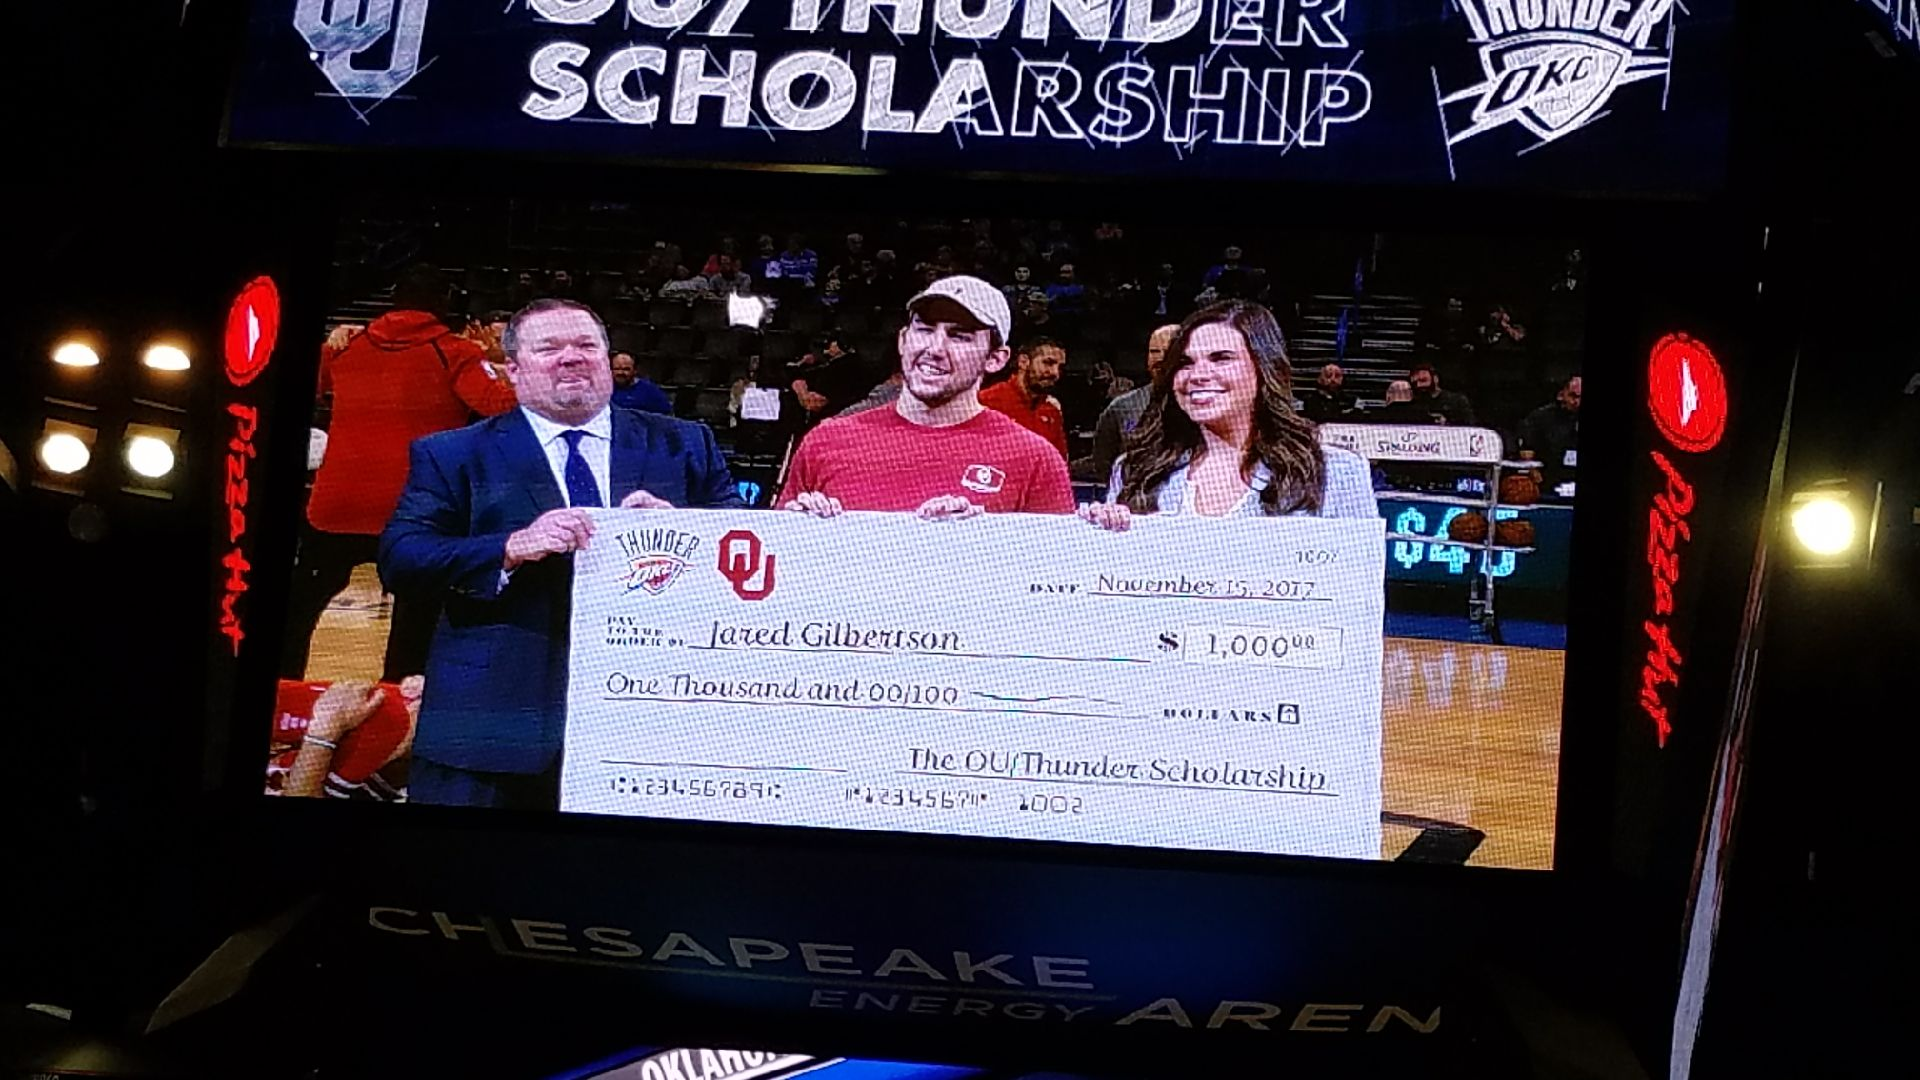 Jared Gilbertson receives $1000 scholarship